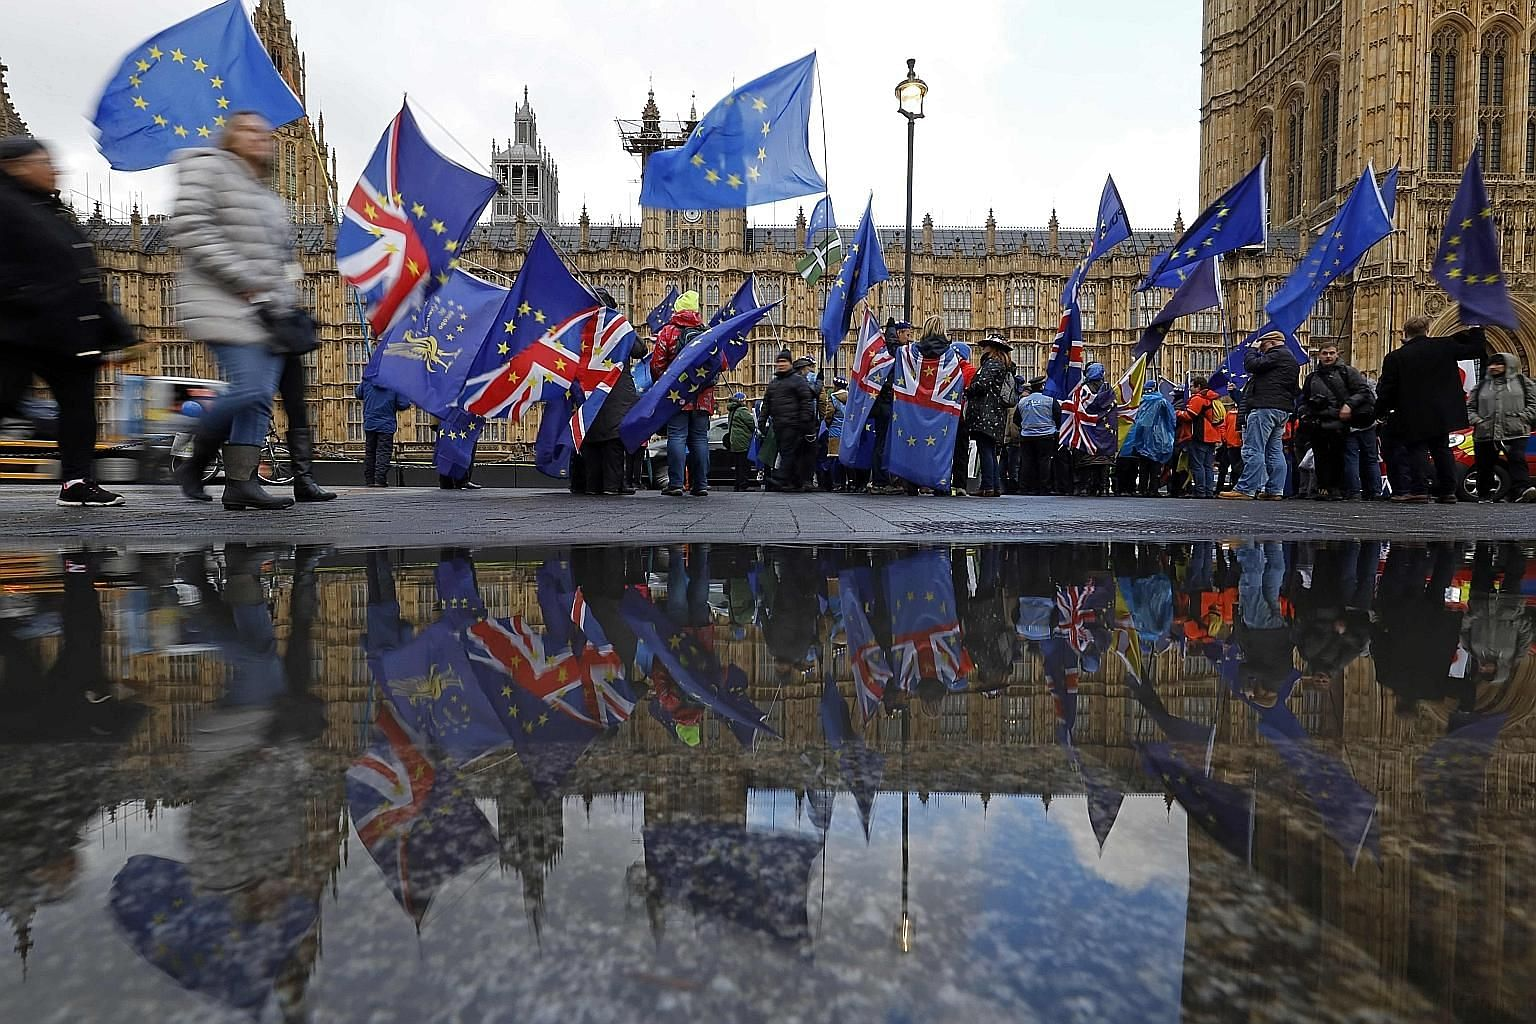 Anti-Brexit supporters outside Britain's Parliament on Tuesday - the day Prime Minister Theresa May's appeal to have an arrangement she negotiated with Europe ratified was voted down in the House of Commons.